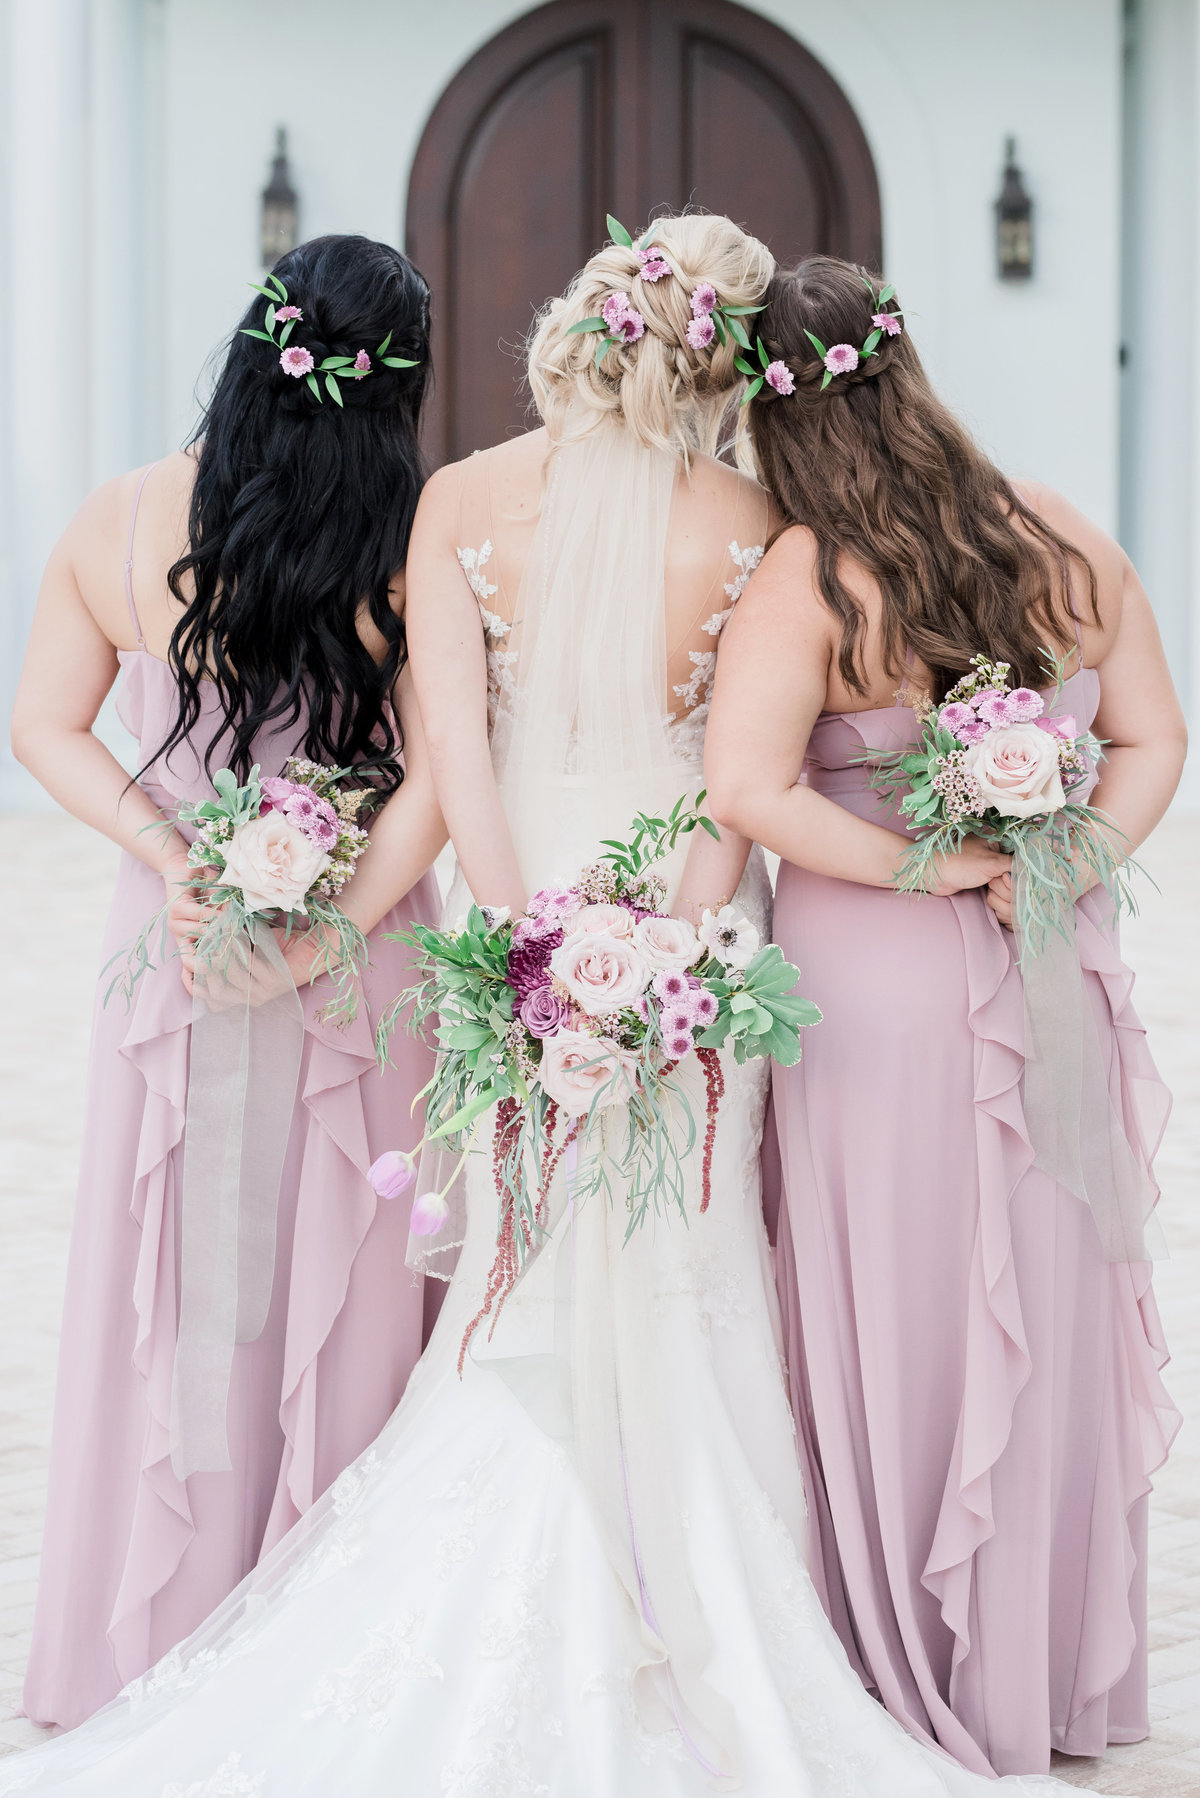 Bride and her two bridesmaids in lavender link arms with their bouquets behind their backs